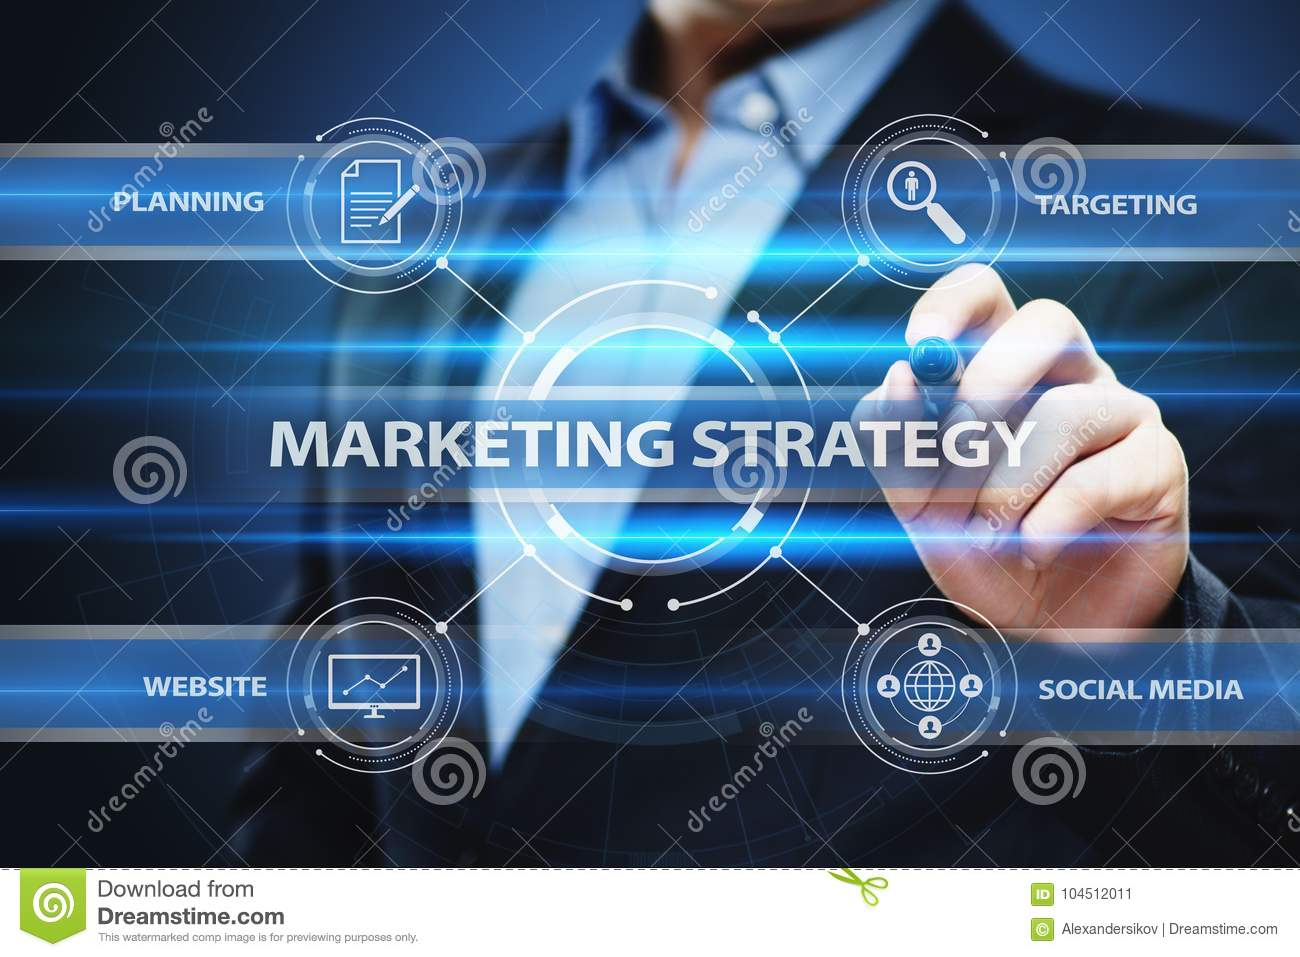 Marketing Strategy Business Advertising Plan Promotion concept